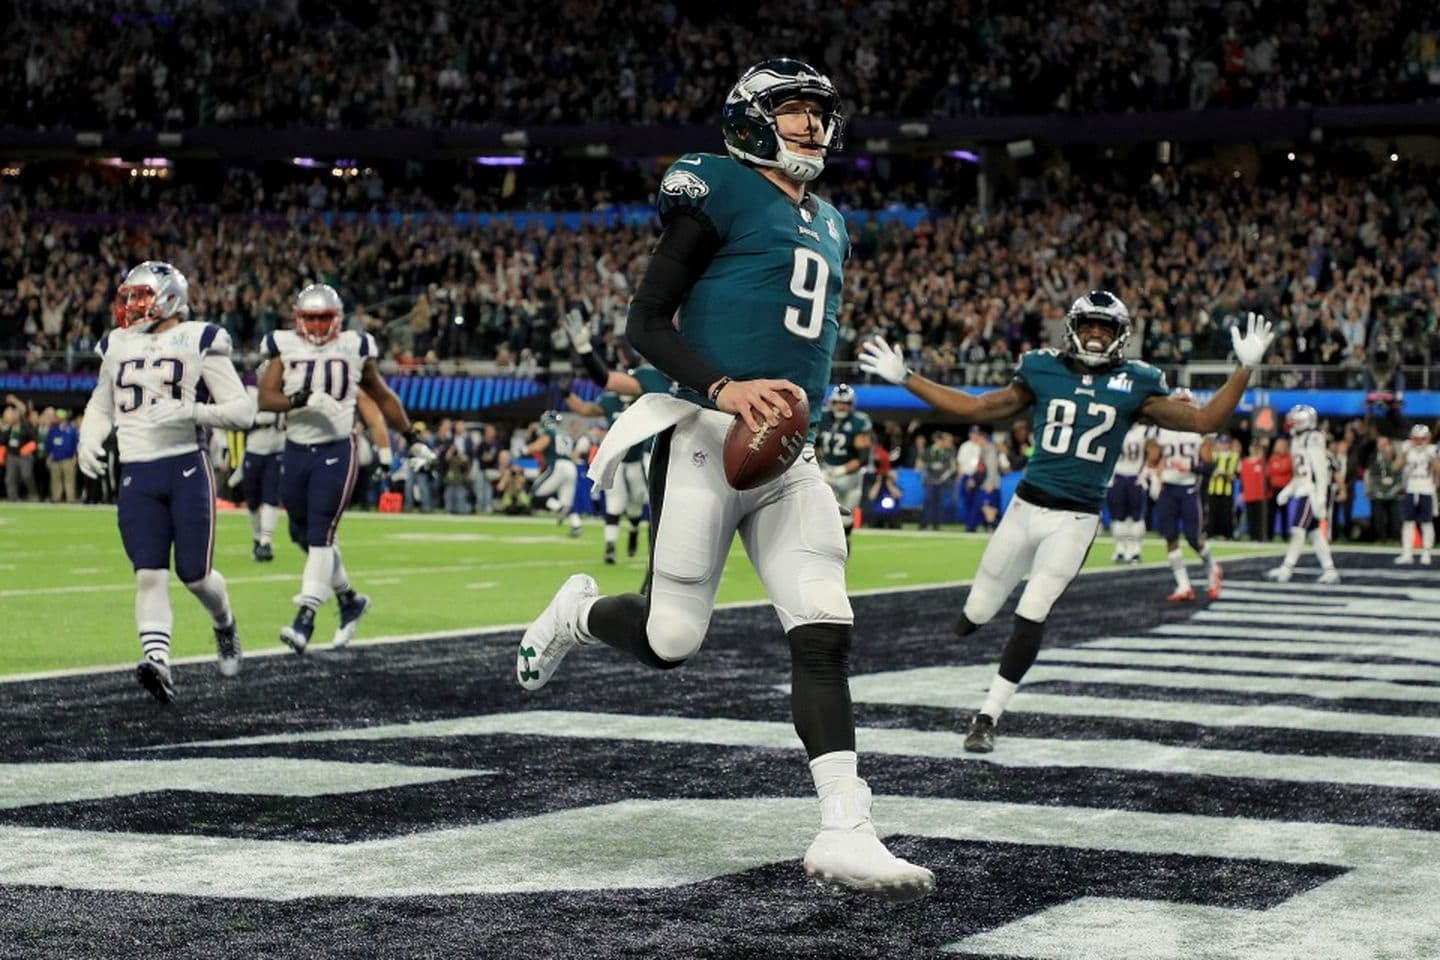 Super Bowl 52: Nick Foles Is A Deserving Mvp After 373-Yard pertaining to Super Bowl Mvp Vote Text Number